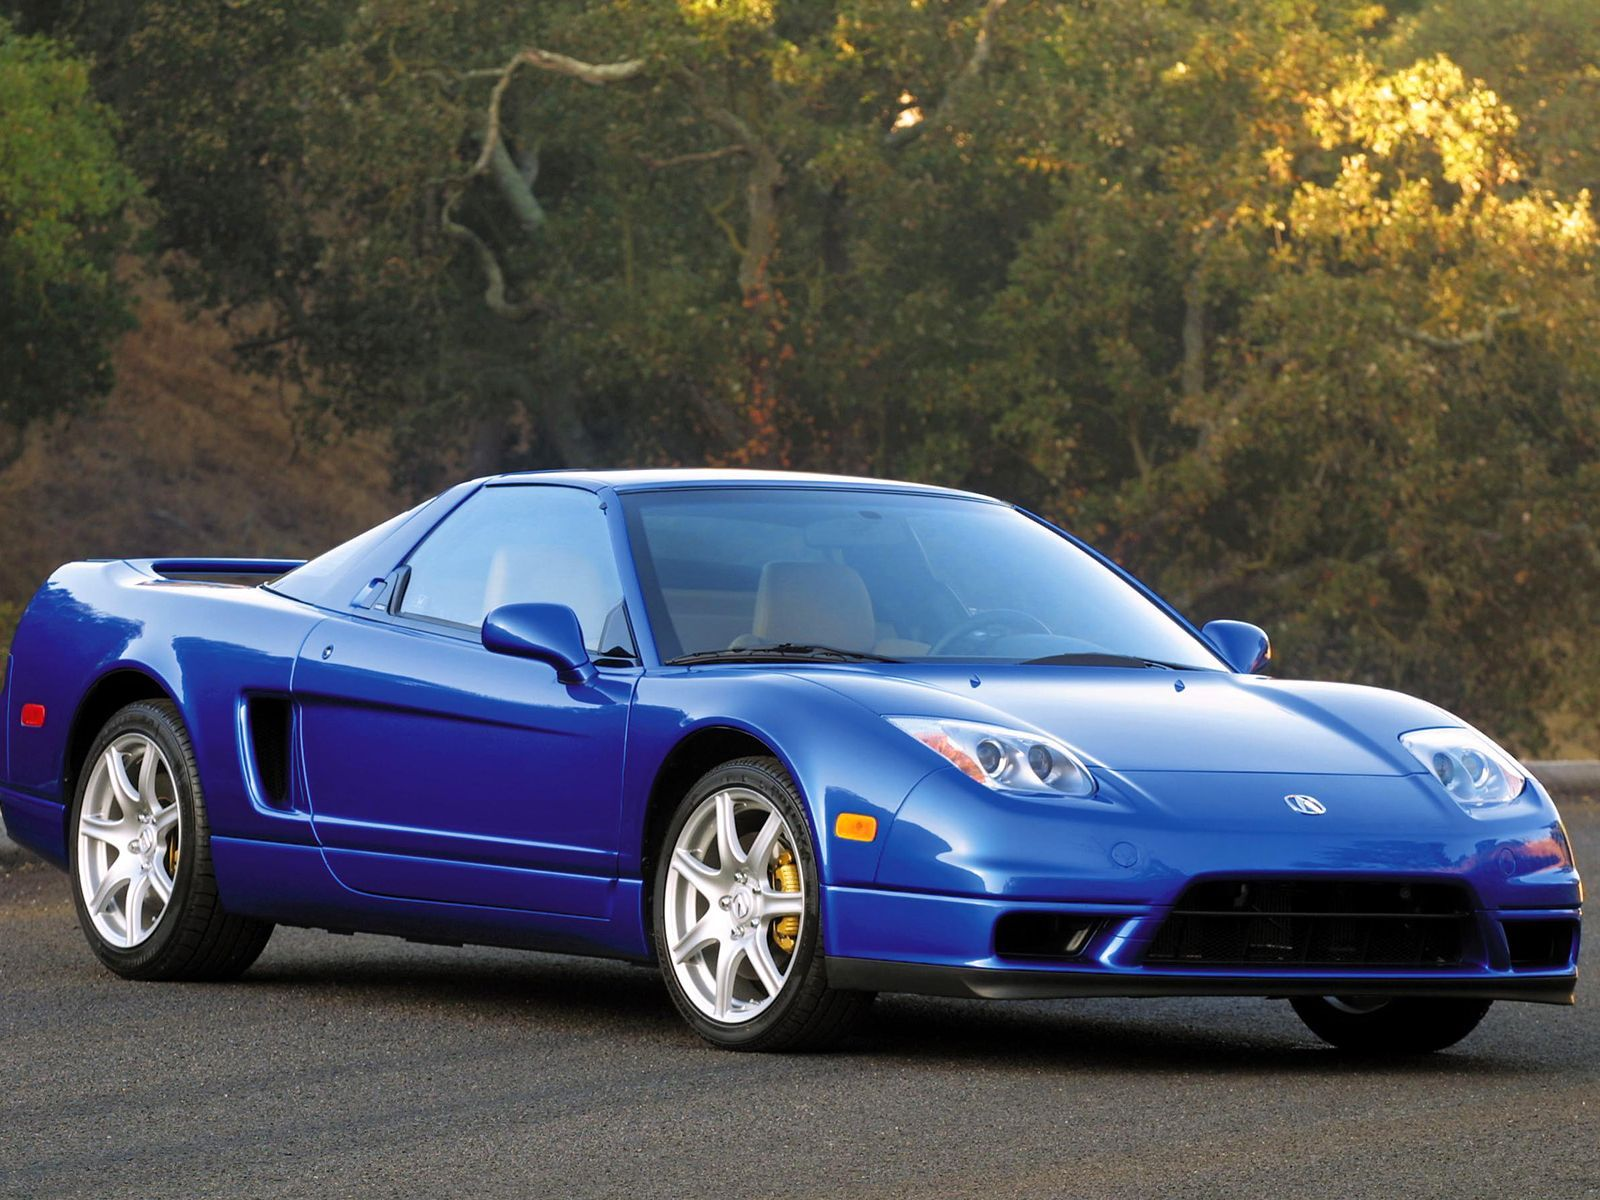 The 25 best 2005 nsx ideas on pinterest acura nsx 2005 acura sports car and honda nsx r